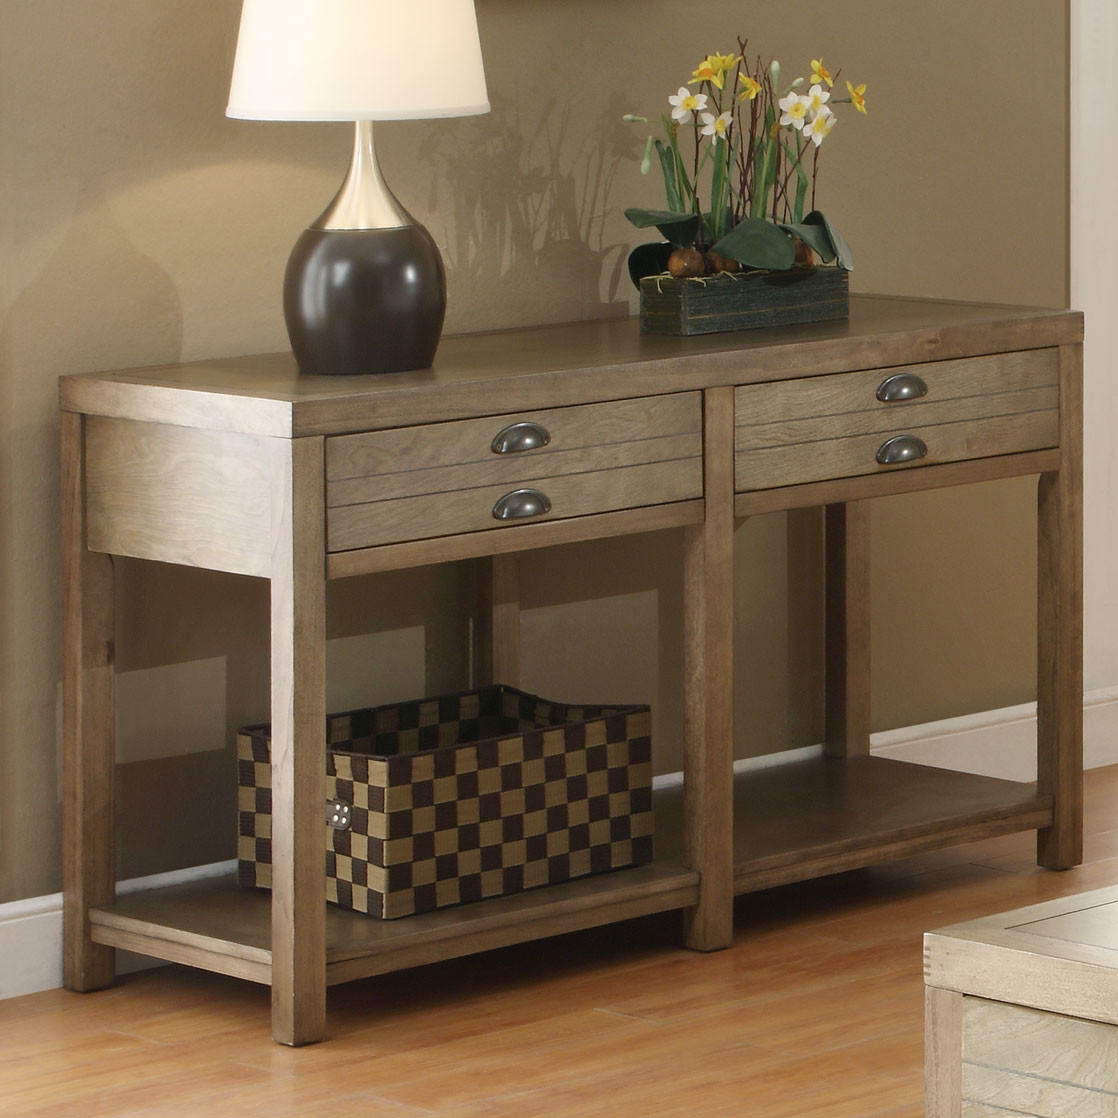 Entrance Tables Furniture discover 41 types of foyer tables for accents and storage | home